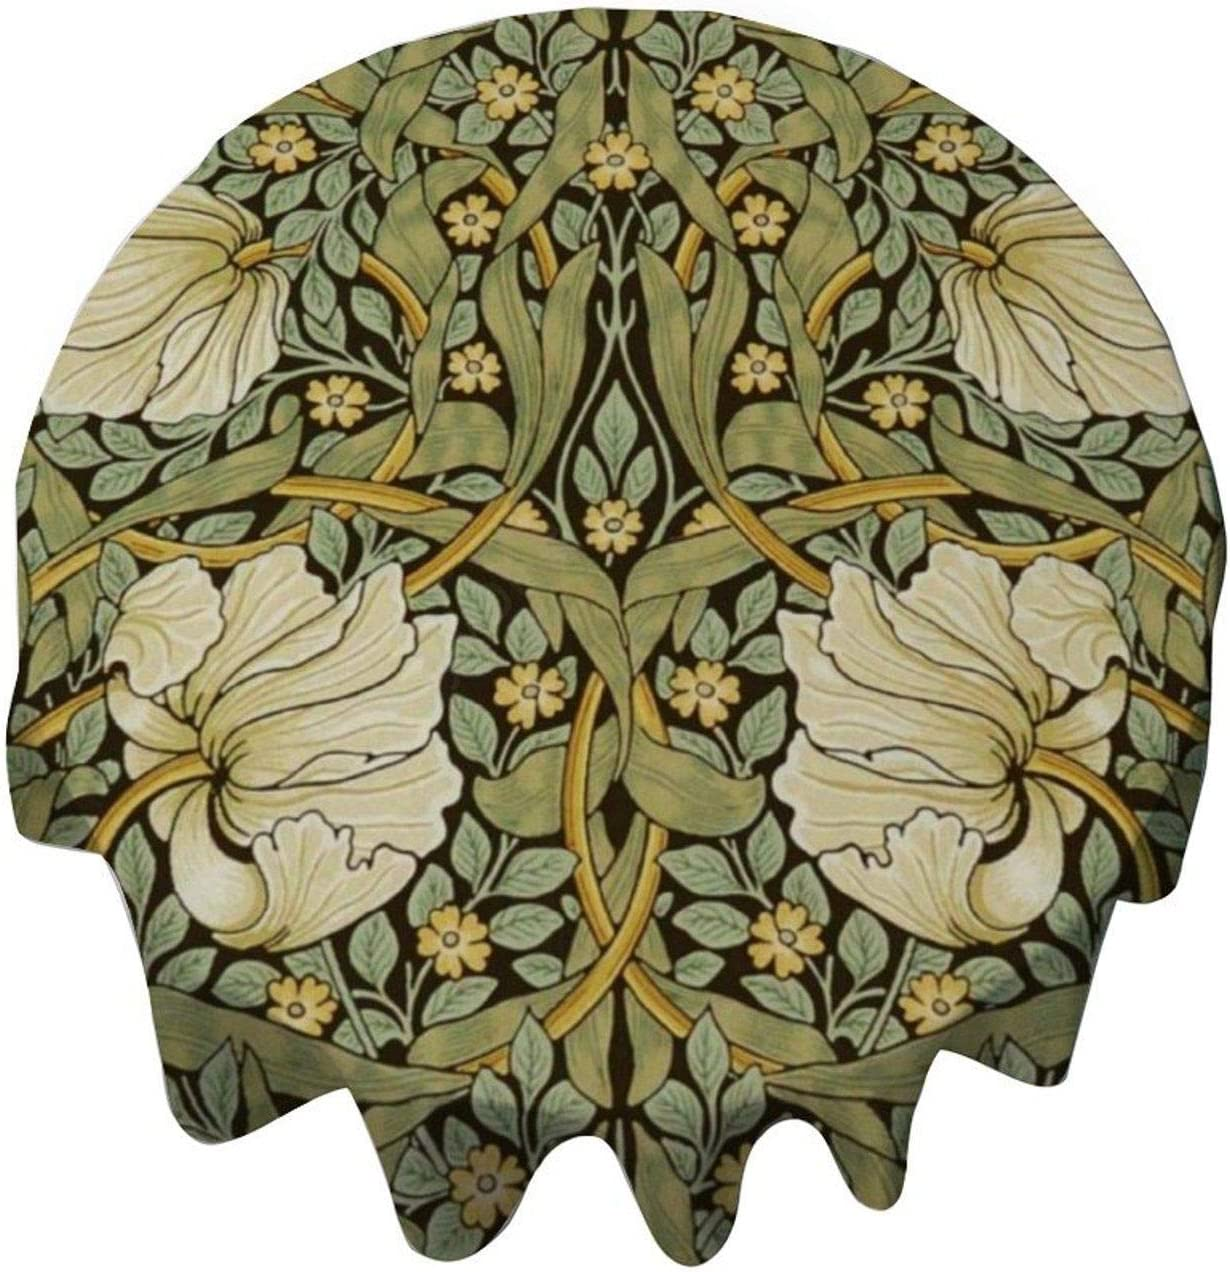 Tablecloth Round 54 Inch Table Cover William Morris Pimpernel Vintage Pre-Raphaelite Table Cloth Decor for Buffet Table, Parties, Holiday Dinner, Wedding & More